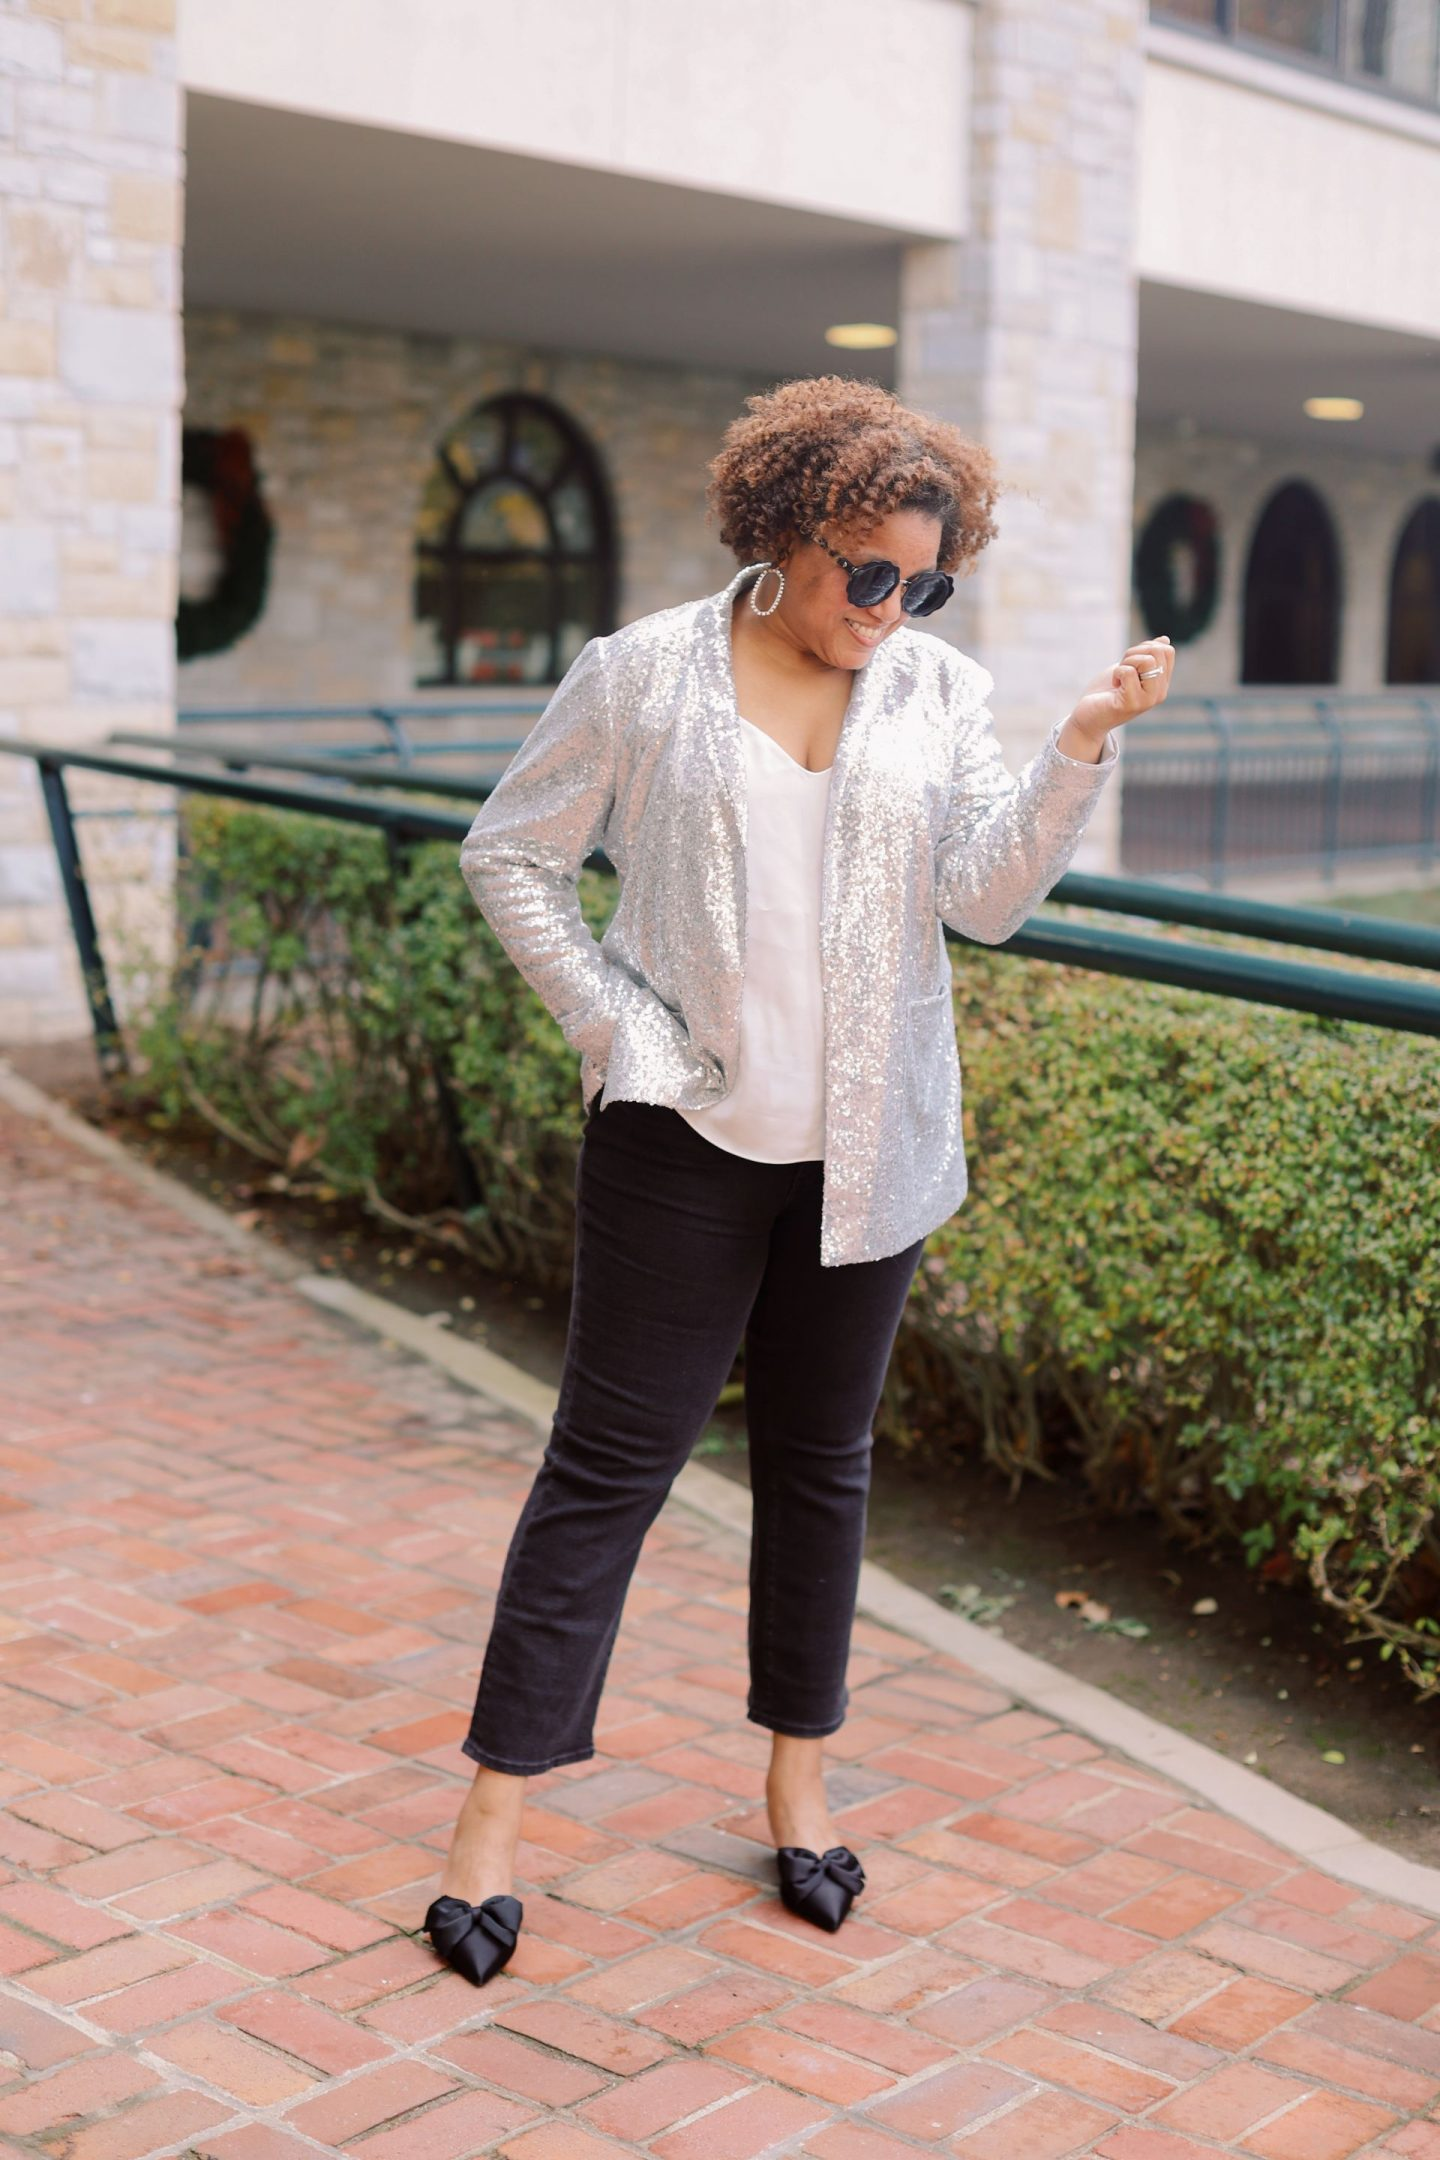 Nordstrom Holiday Looks by popular Kentucky fashion blog, Really Rynetta: image of a woman wearing a Nordstrom sequin blazer, black pants, statement earrings, black point toe flats, and white blouse.